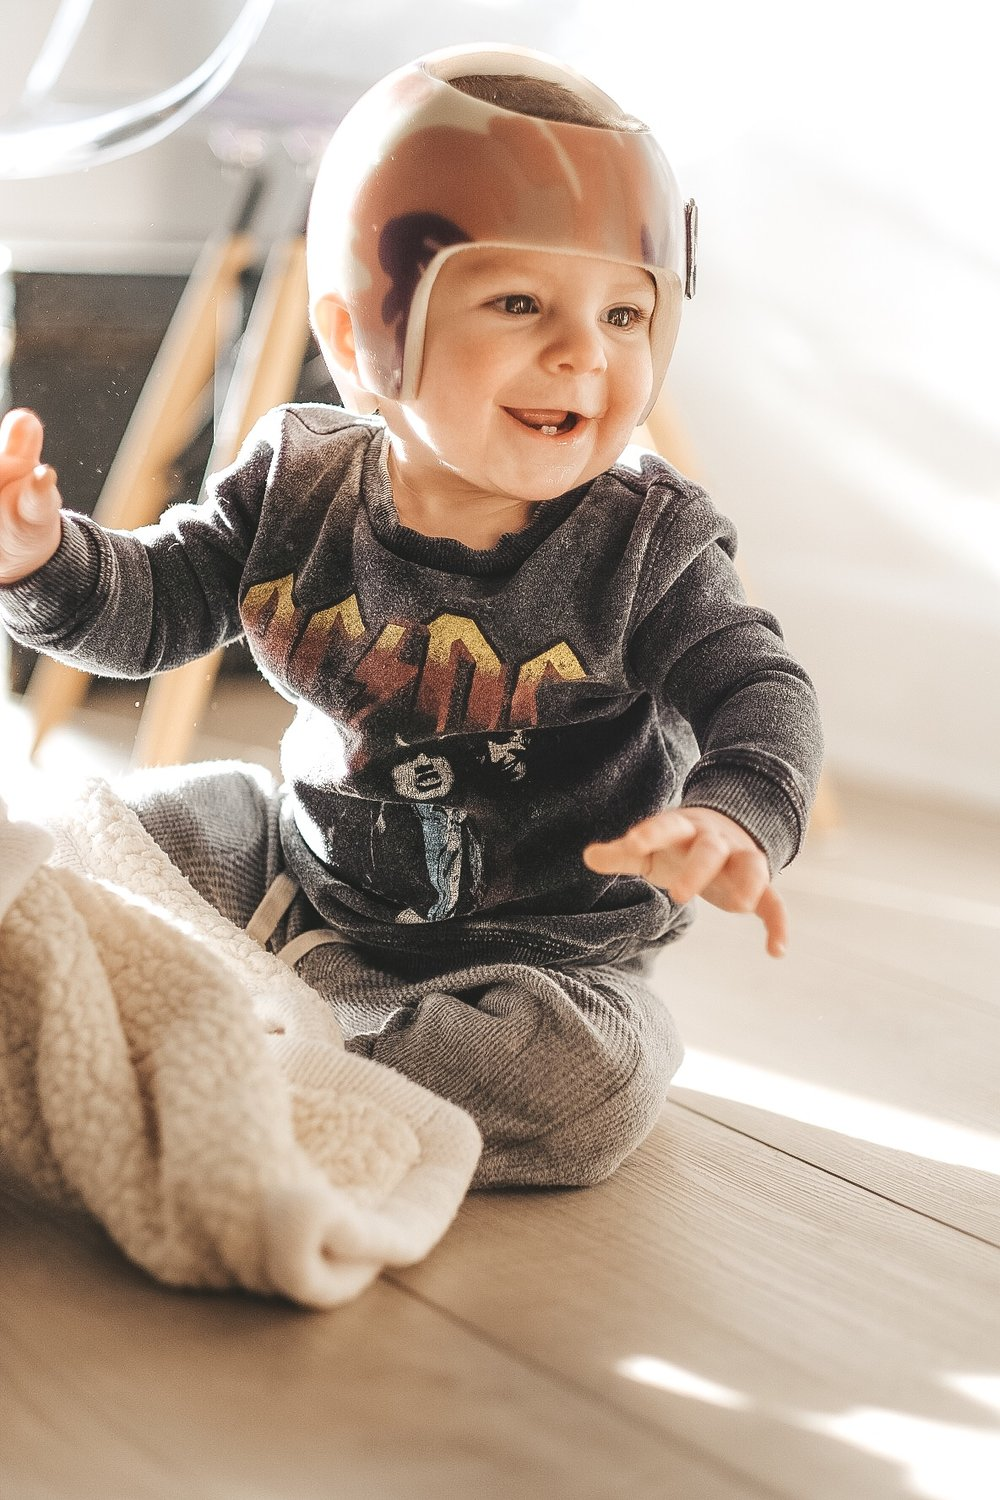 Tips to take better photos of toddlers.  How to take better photos of your baby.  Baby ACDC sweatshirt.  Camo starband helmet.